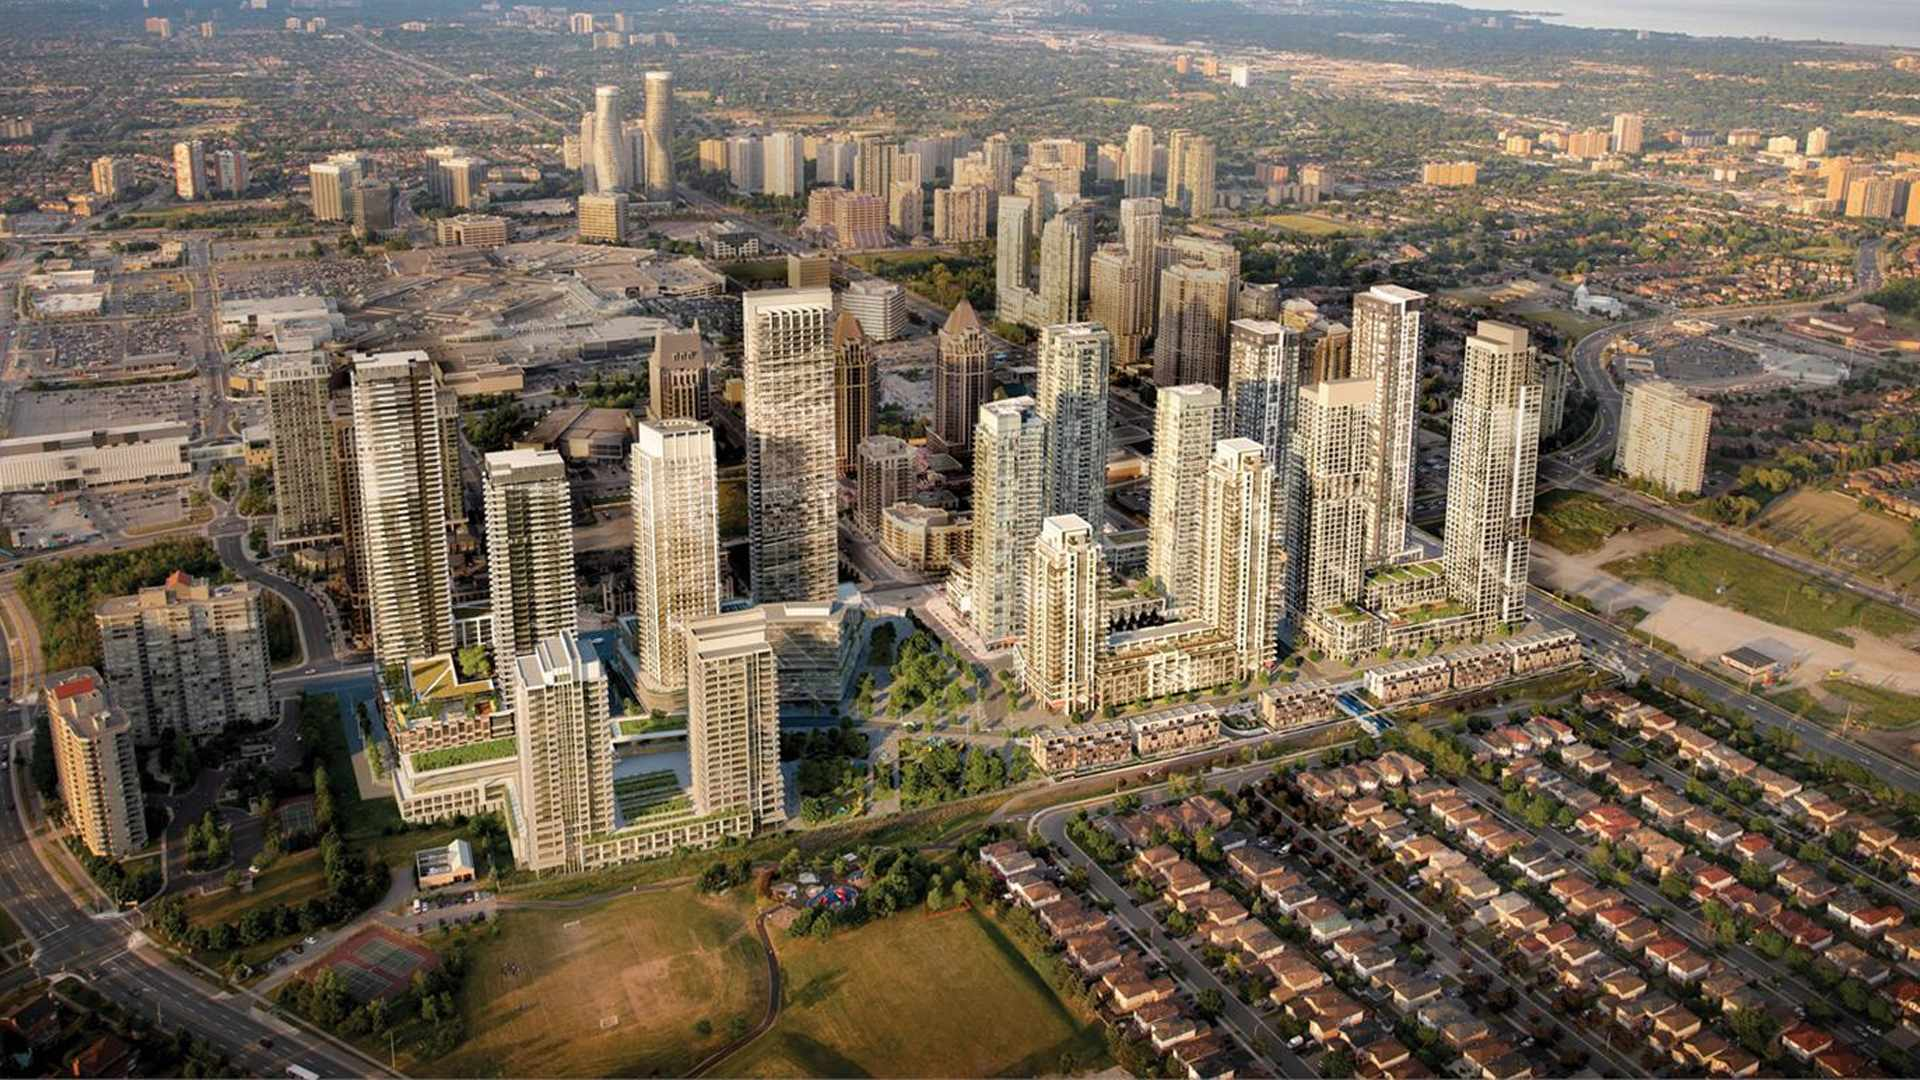 avia-condos-mississauga-square-one-condos-investment-pre-construction11565030150.jpg